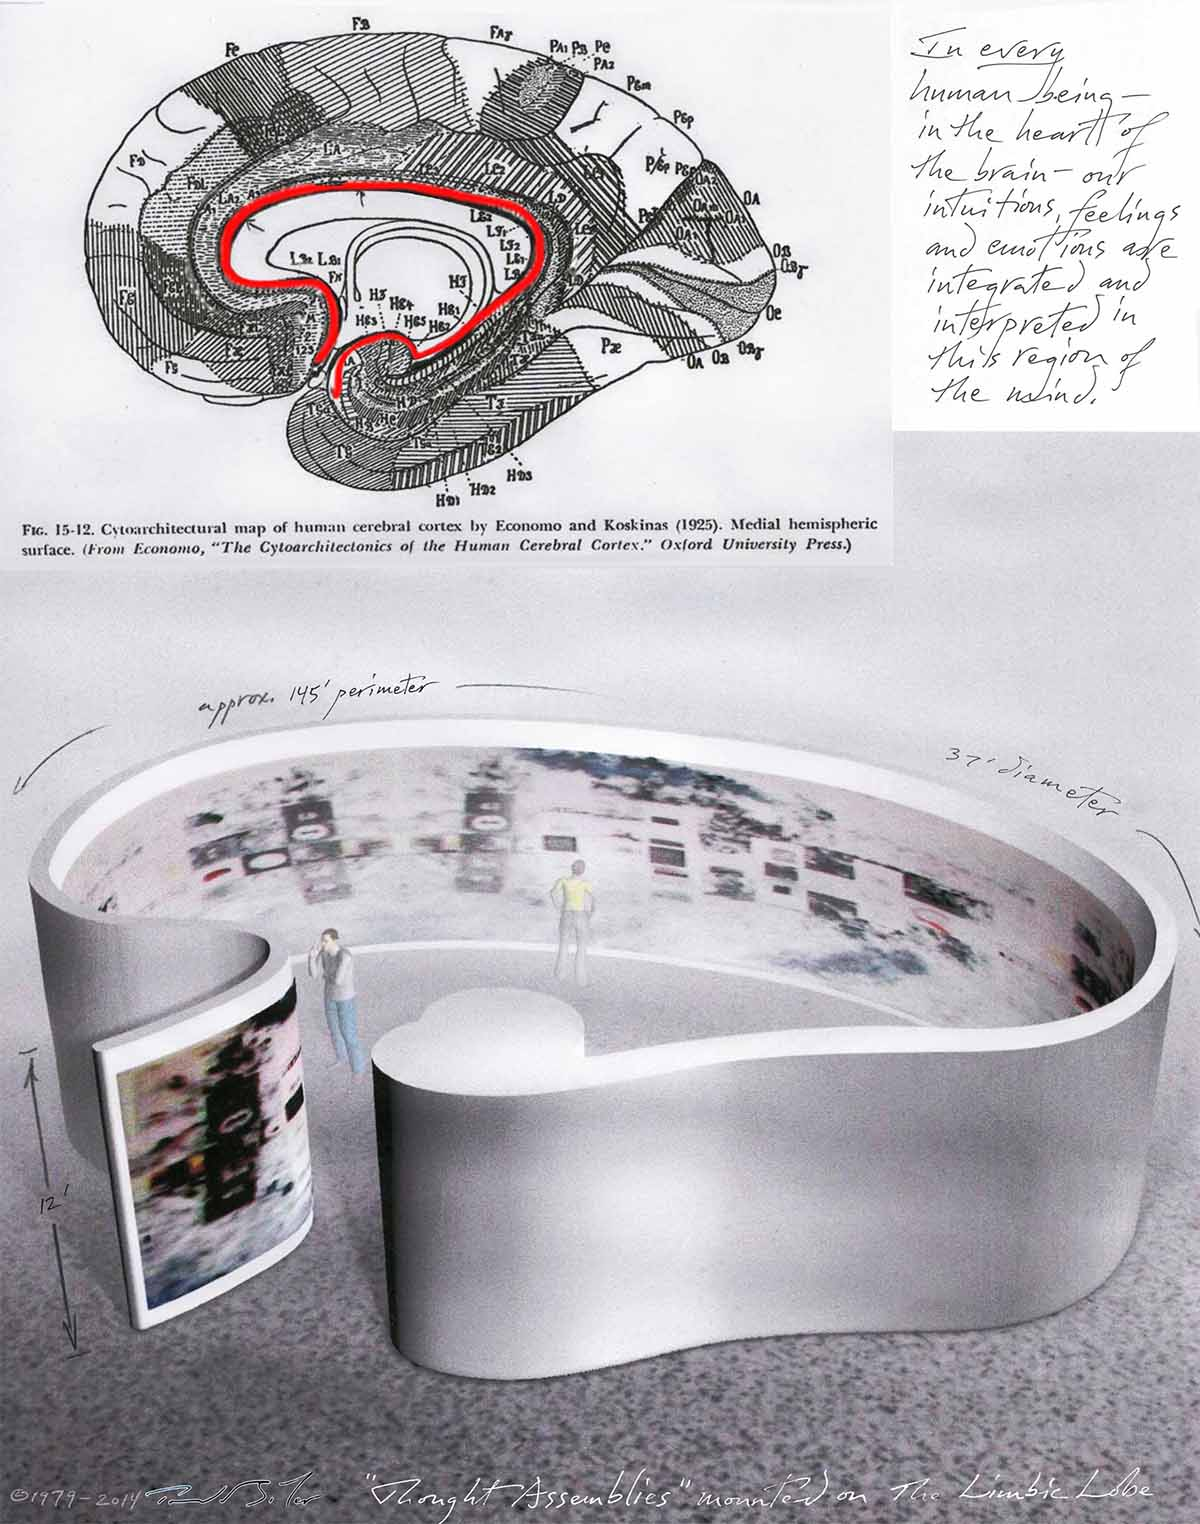 Thought Assemblies mounted on The Limbic Brain (installation drawing 1979-2014)